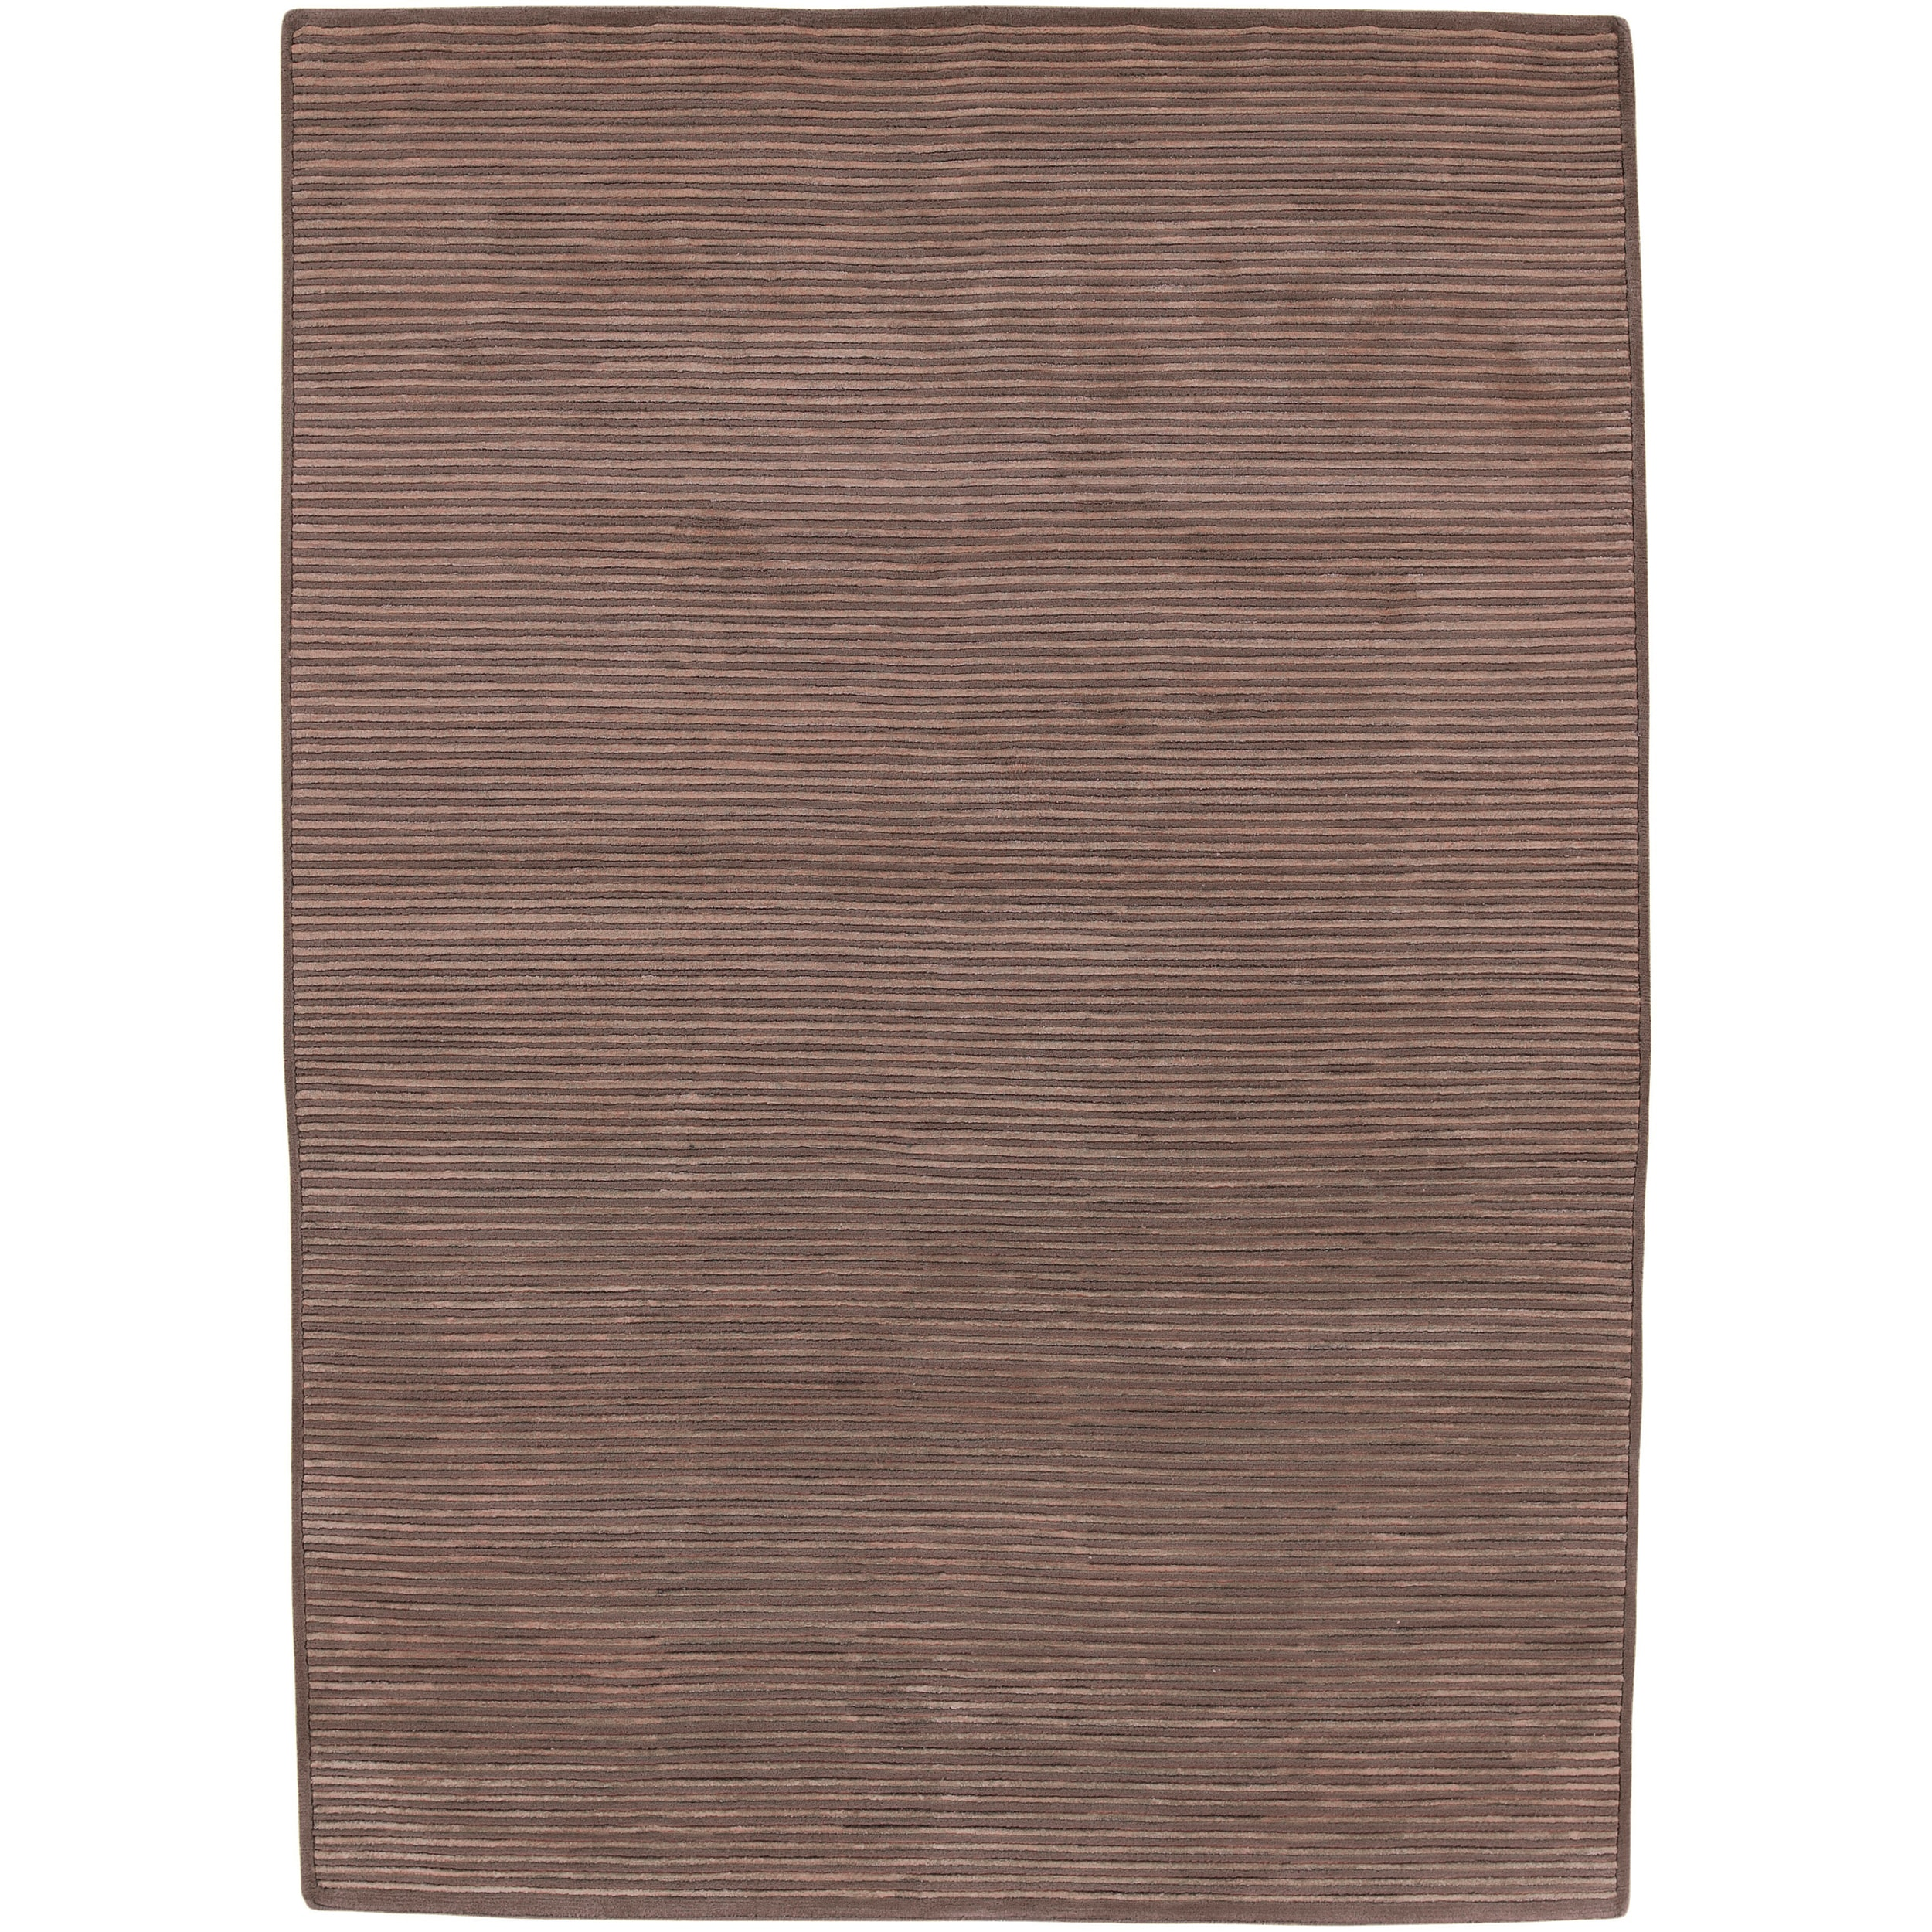 Hand-knotted Solid Brown Casual Chesham Semi-Worsted Wool Area Rug - 5' x 8'